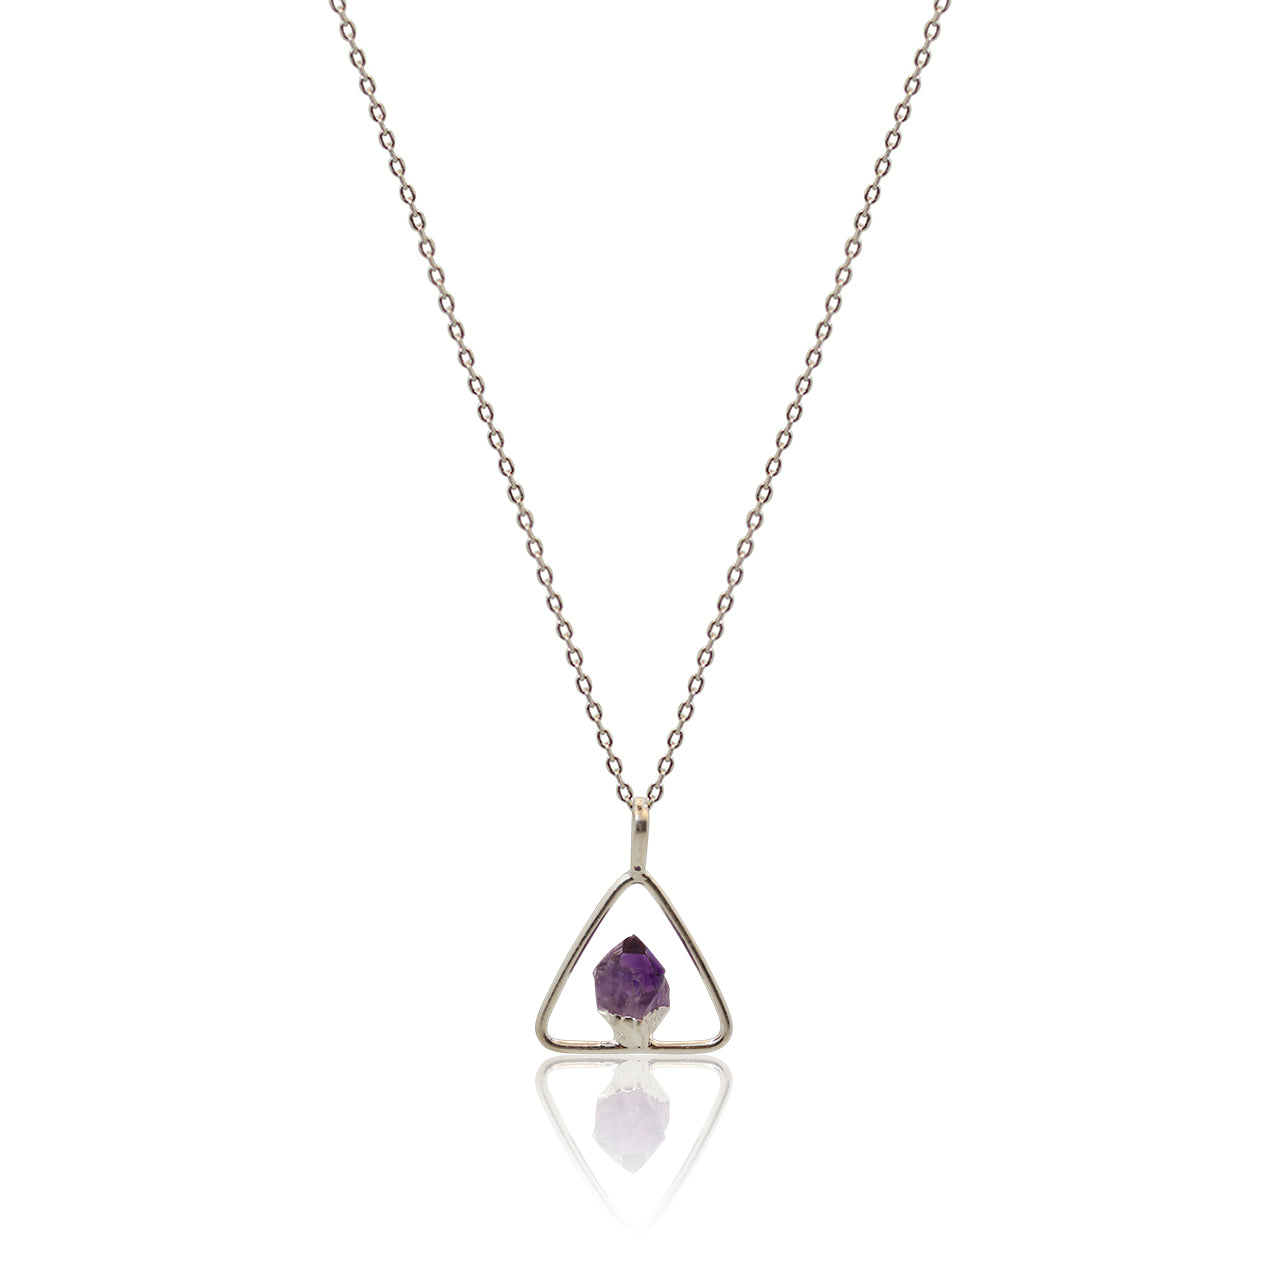 Amethyst Power Necklace